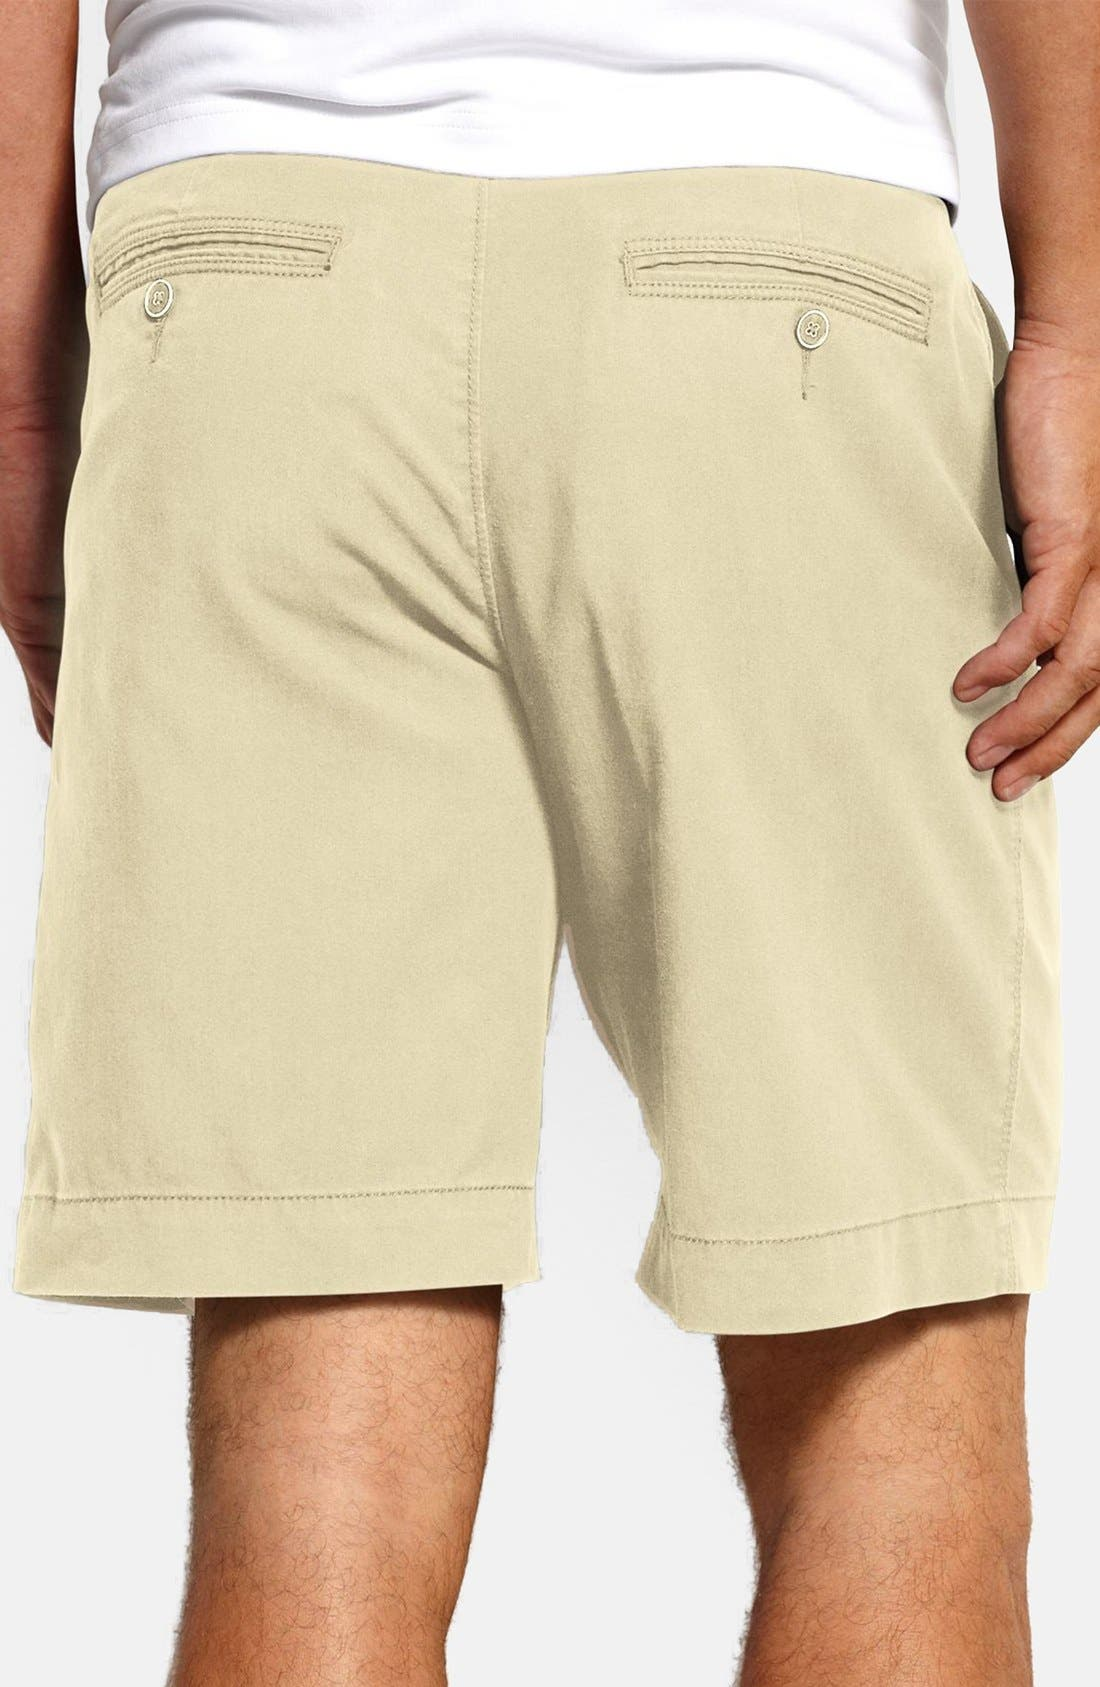 Alternate Image 2  - Tommy Bahama 'Ashore Thing' Shorts (Big and Tall) (Online Only)